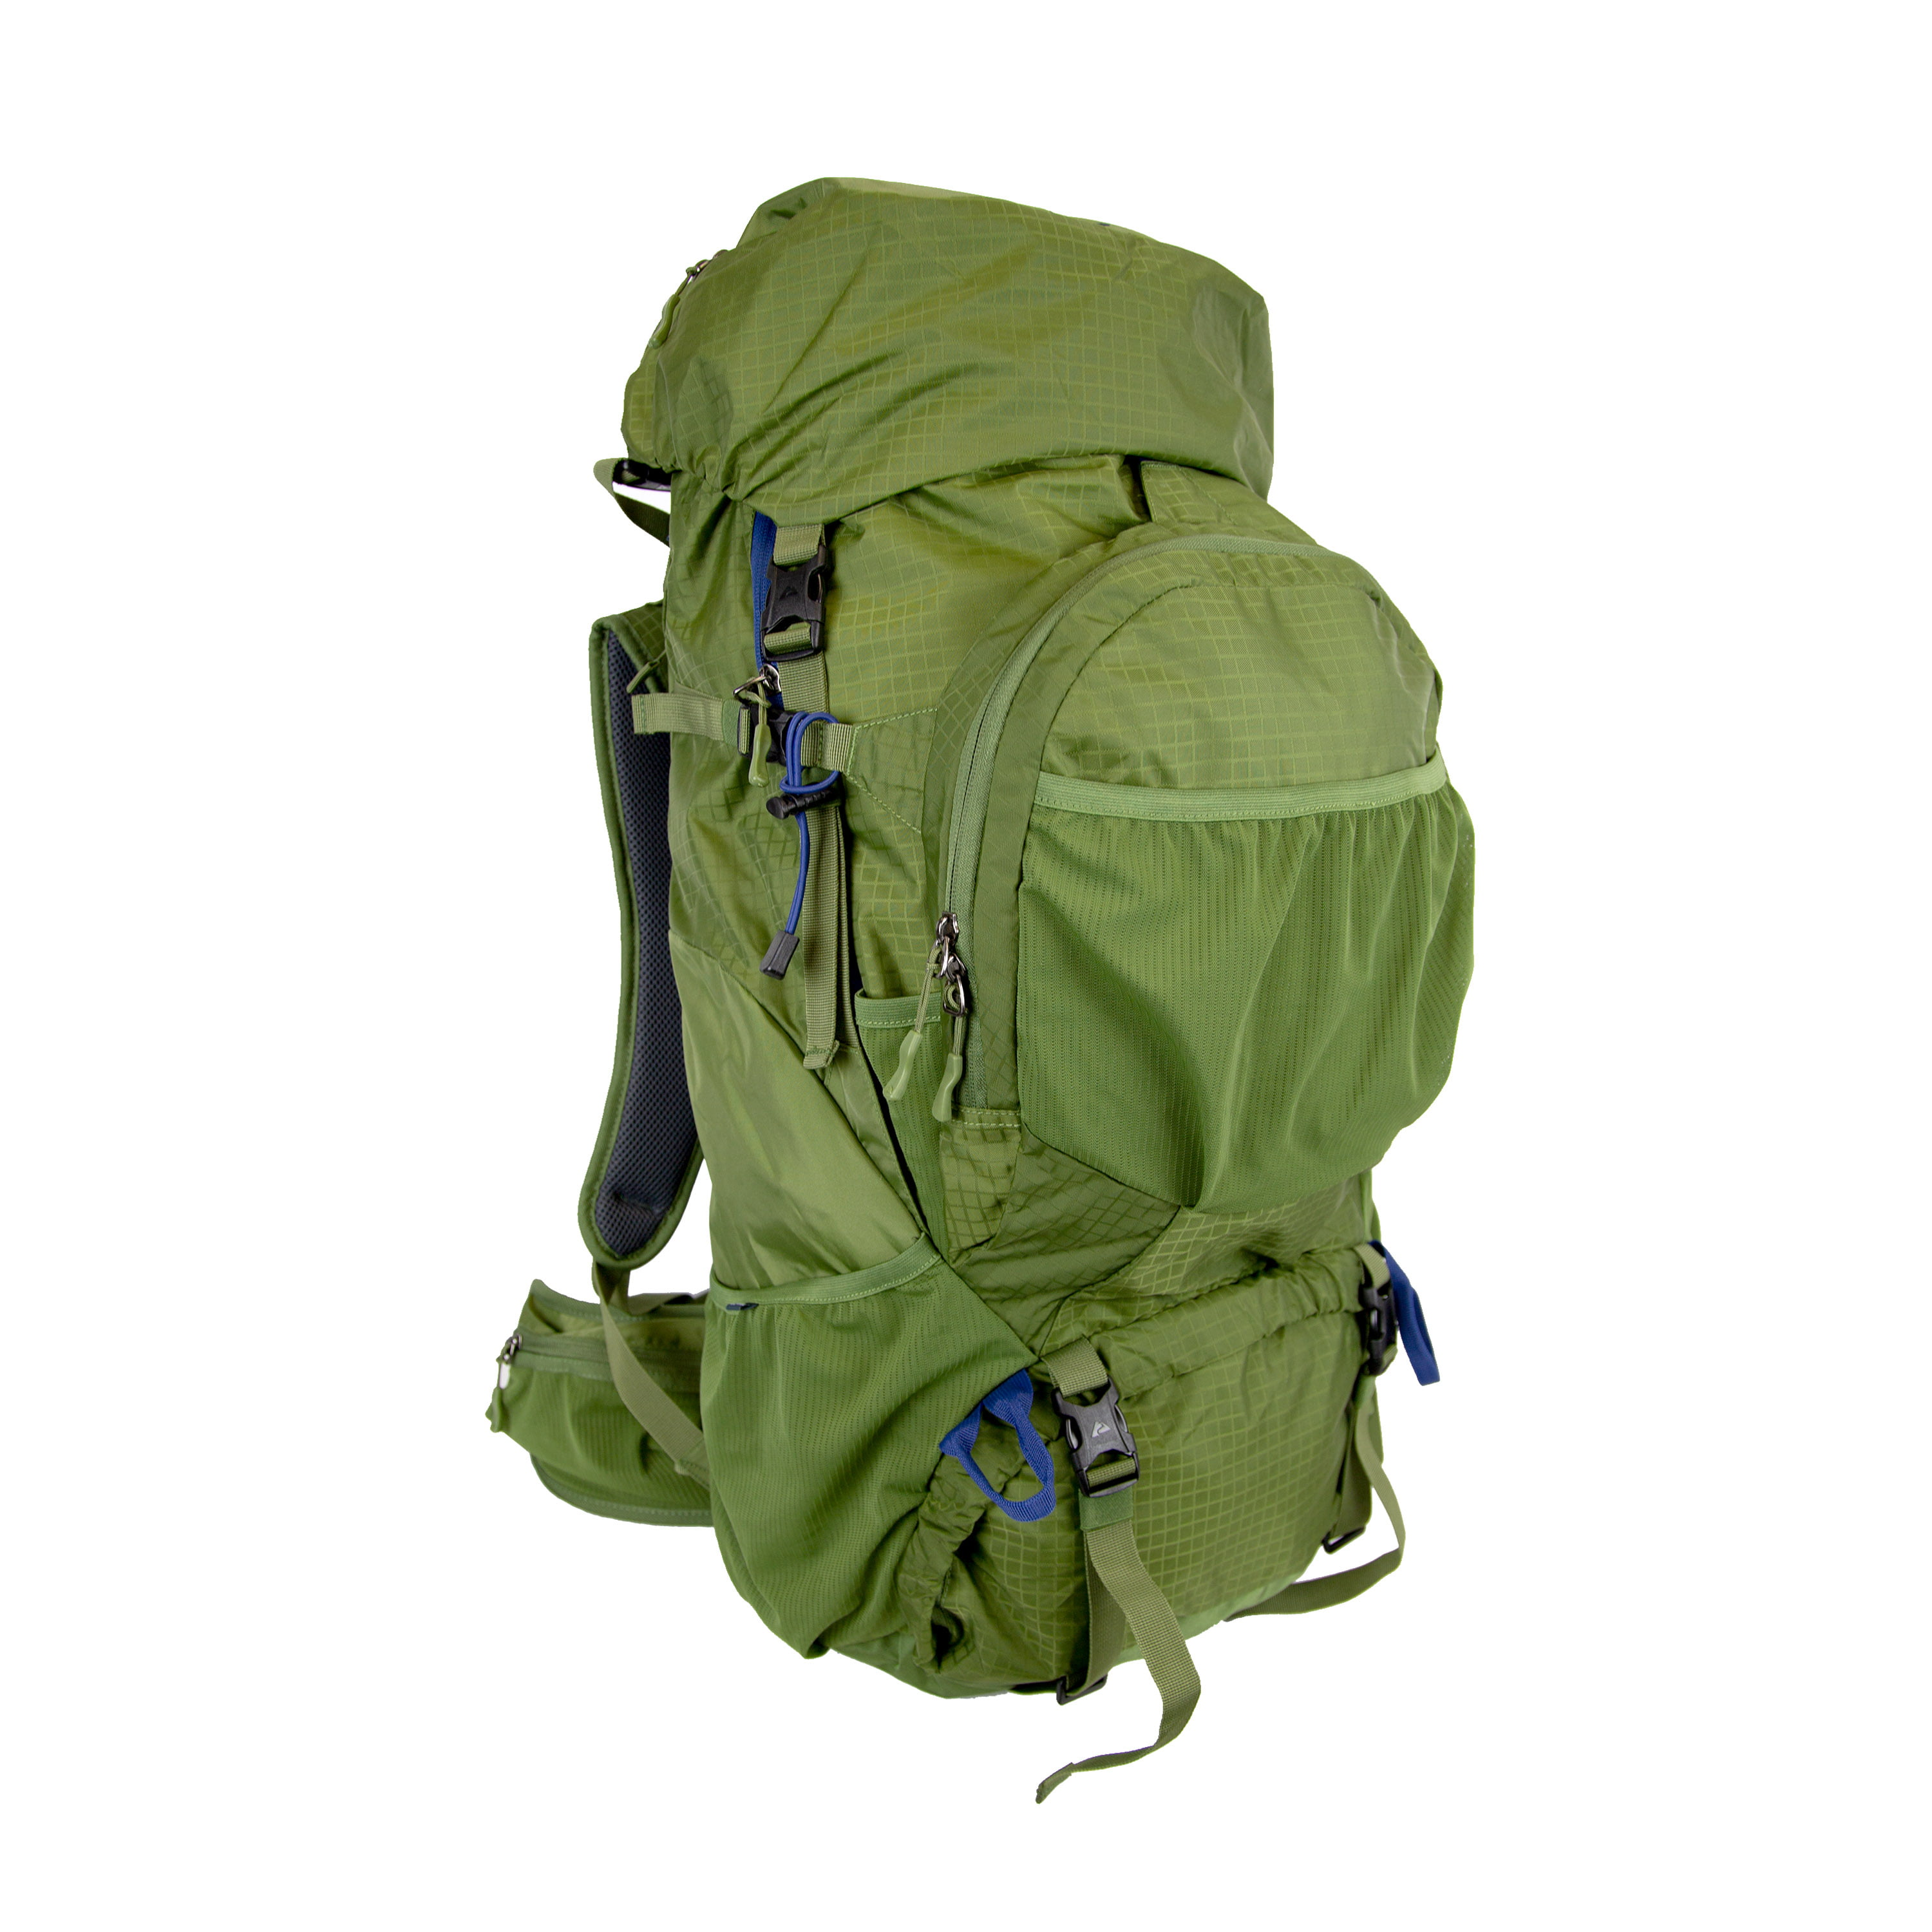 55a7fa80704c Ozark Trail Himont 75L Extended Multi-Day Backpack - Walmart.com